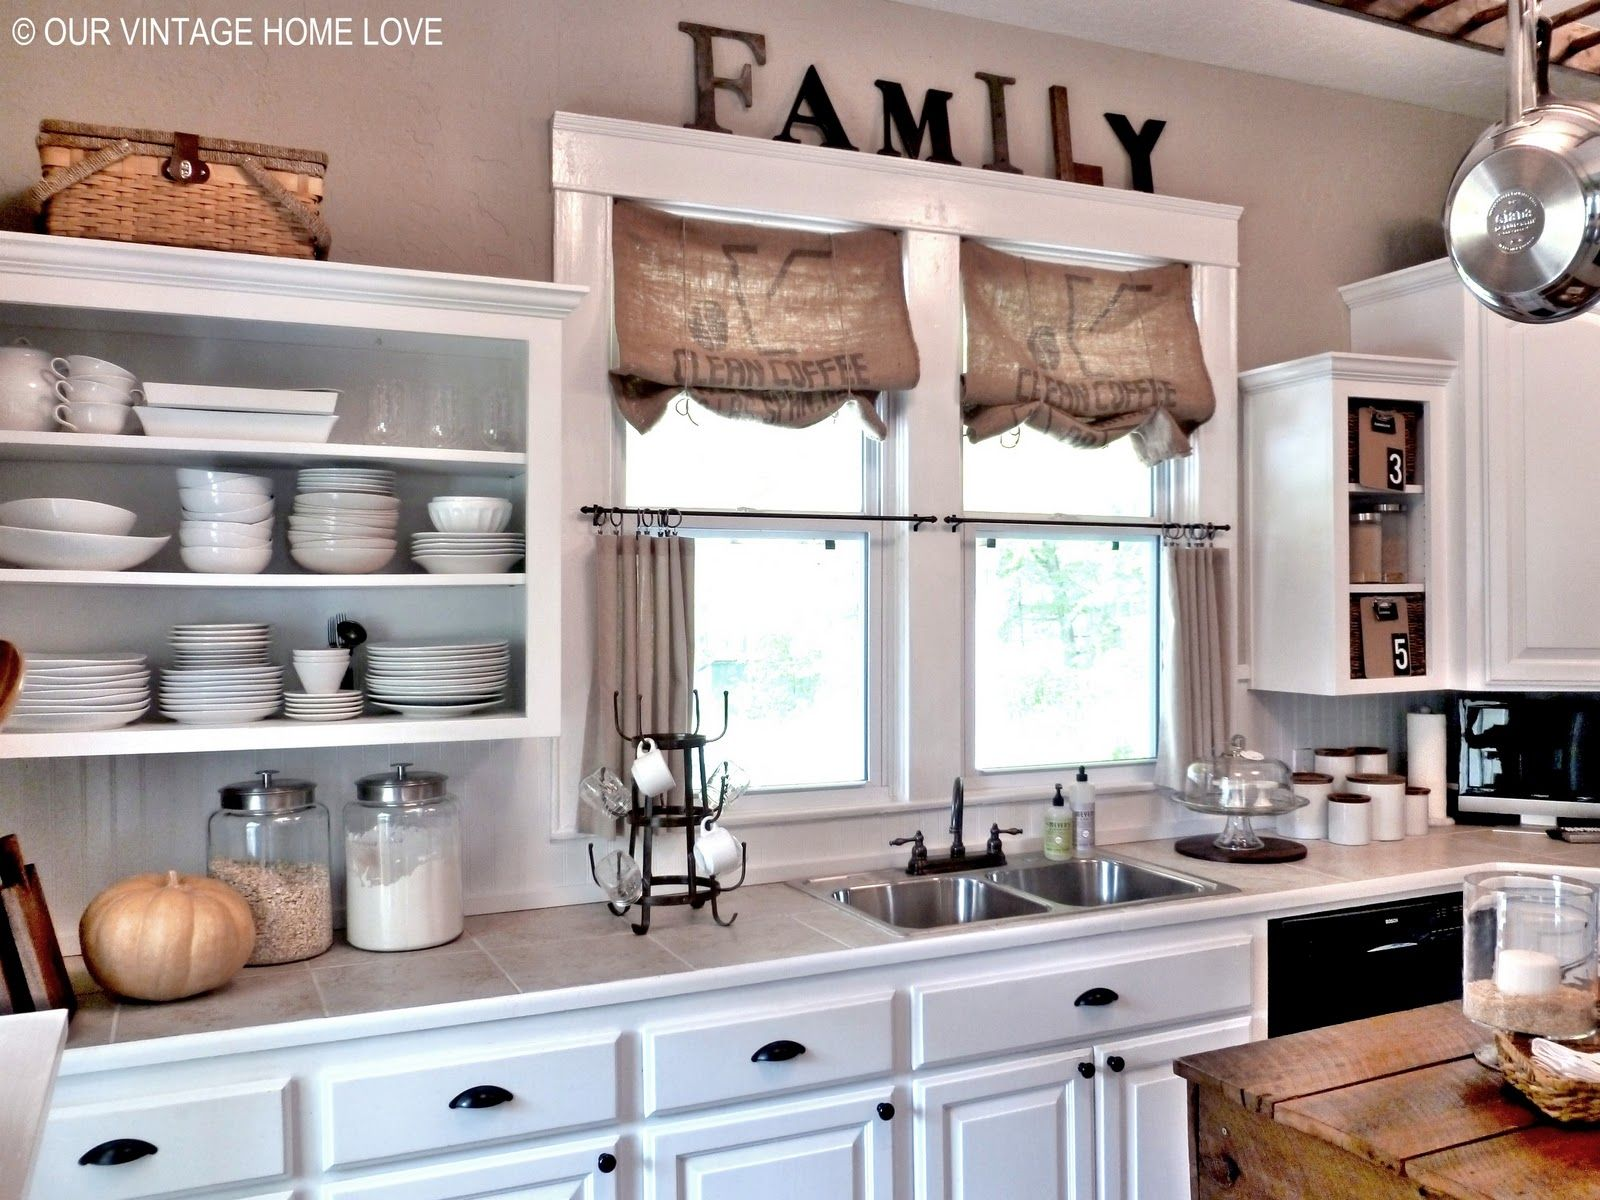 Shelf over kitchen window  erin this could be so fun in your kitchen window treatment for